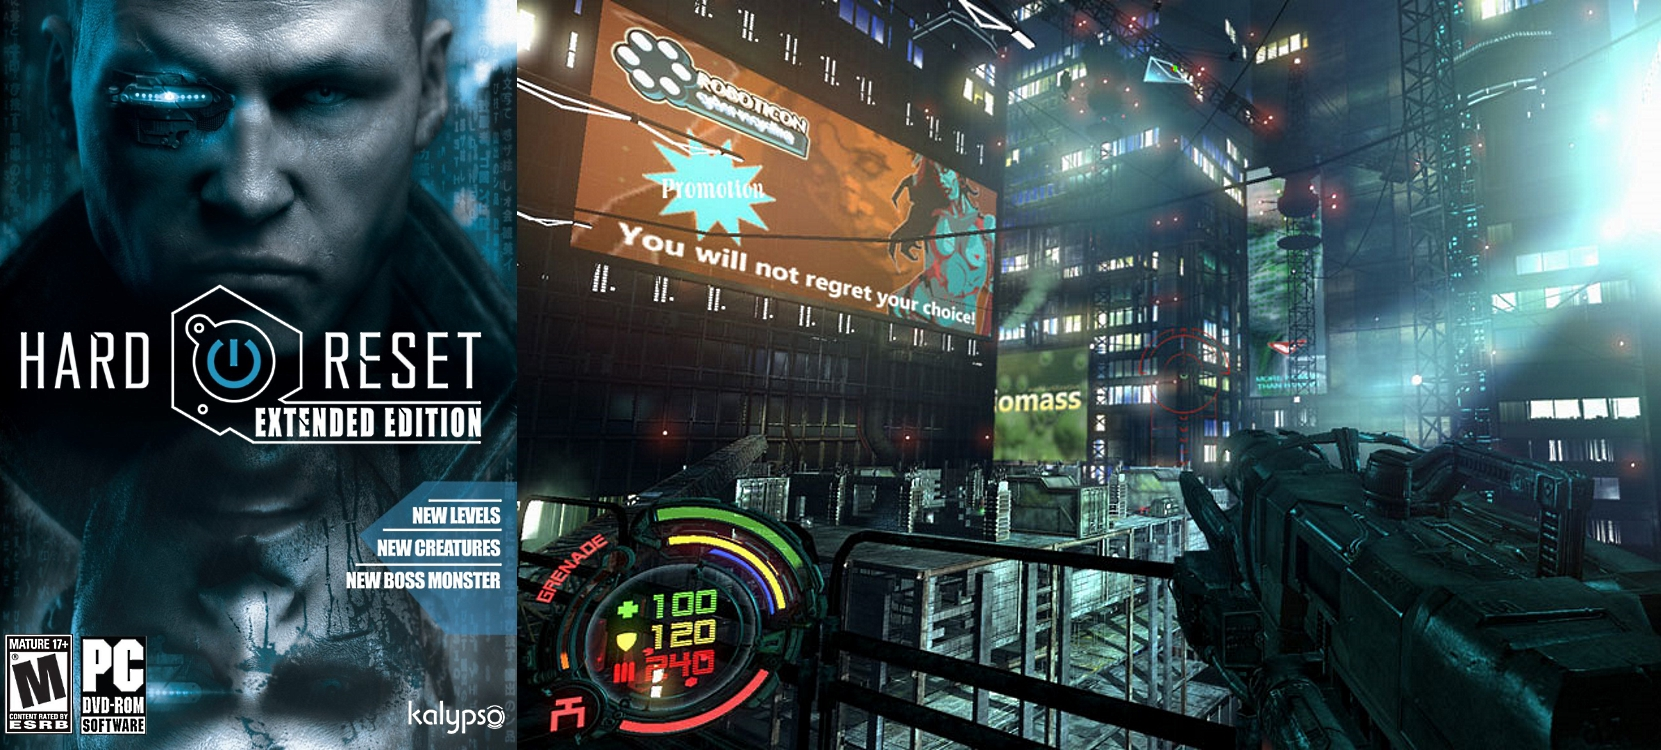 Hard_Reset-pc-cyberpunk-game-cover-gameplay